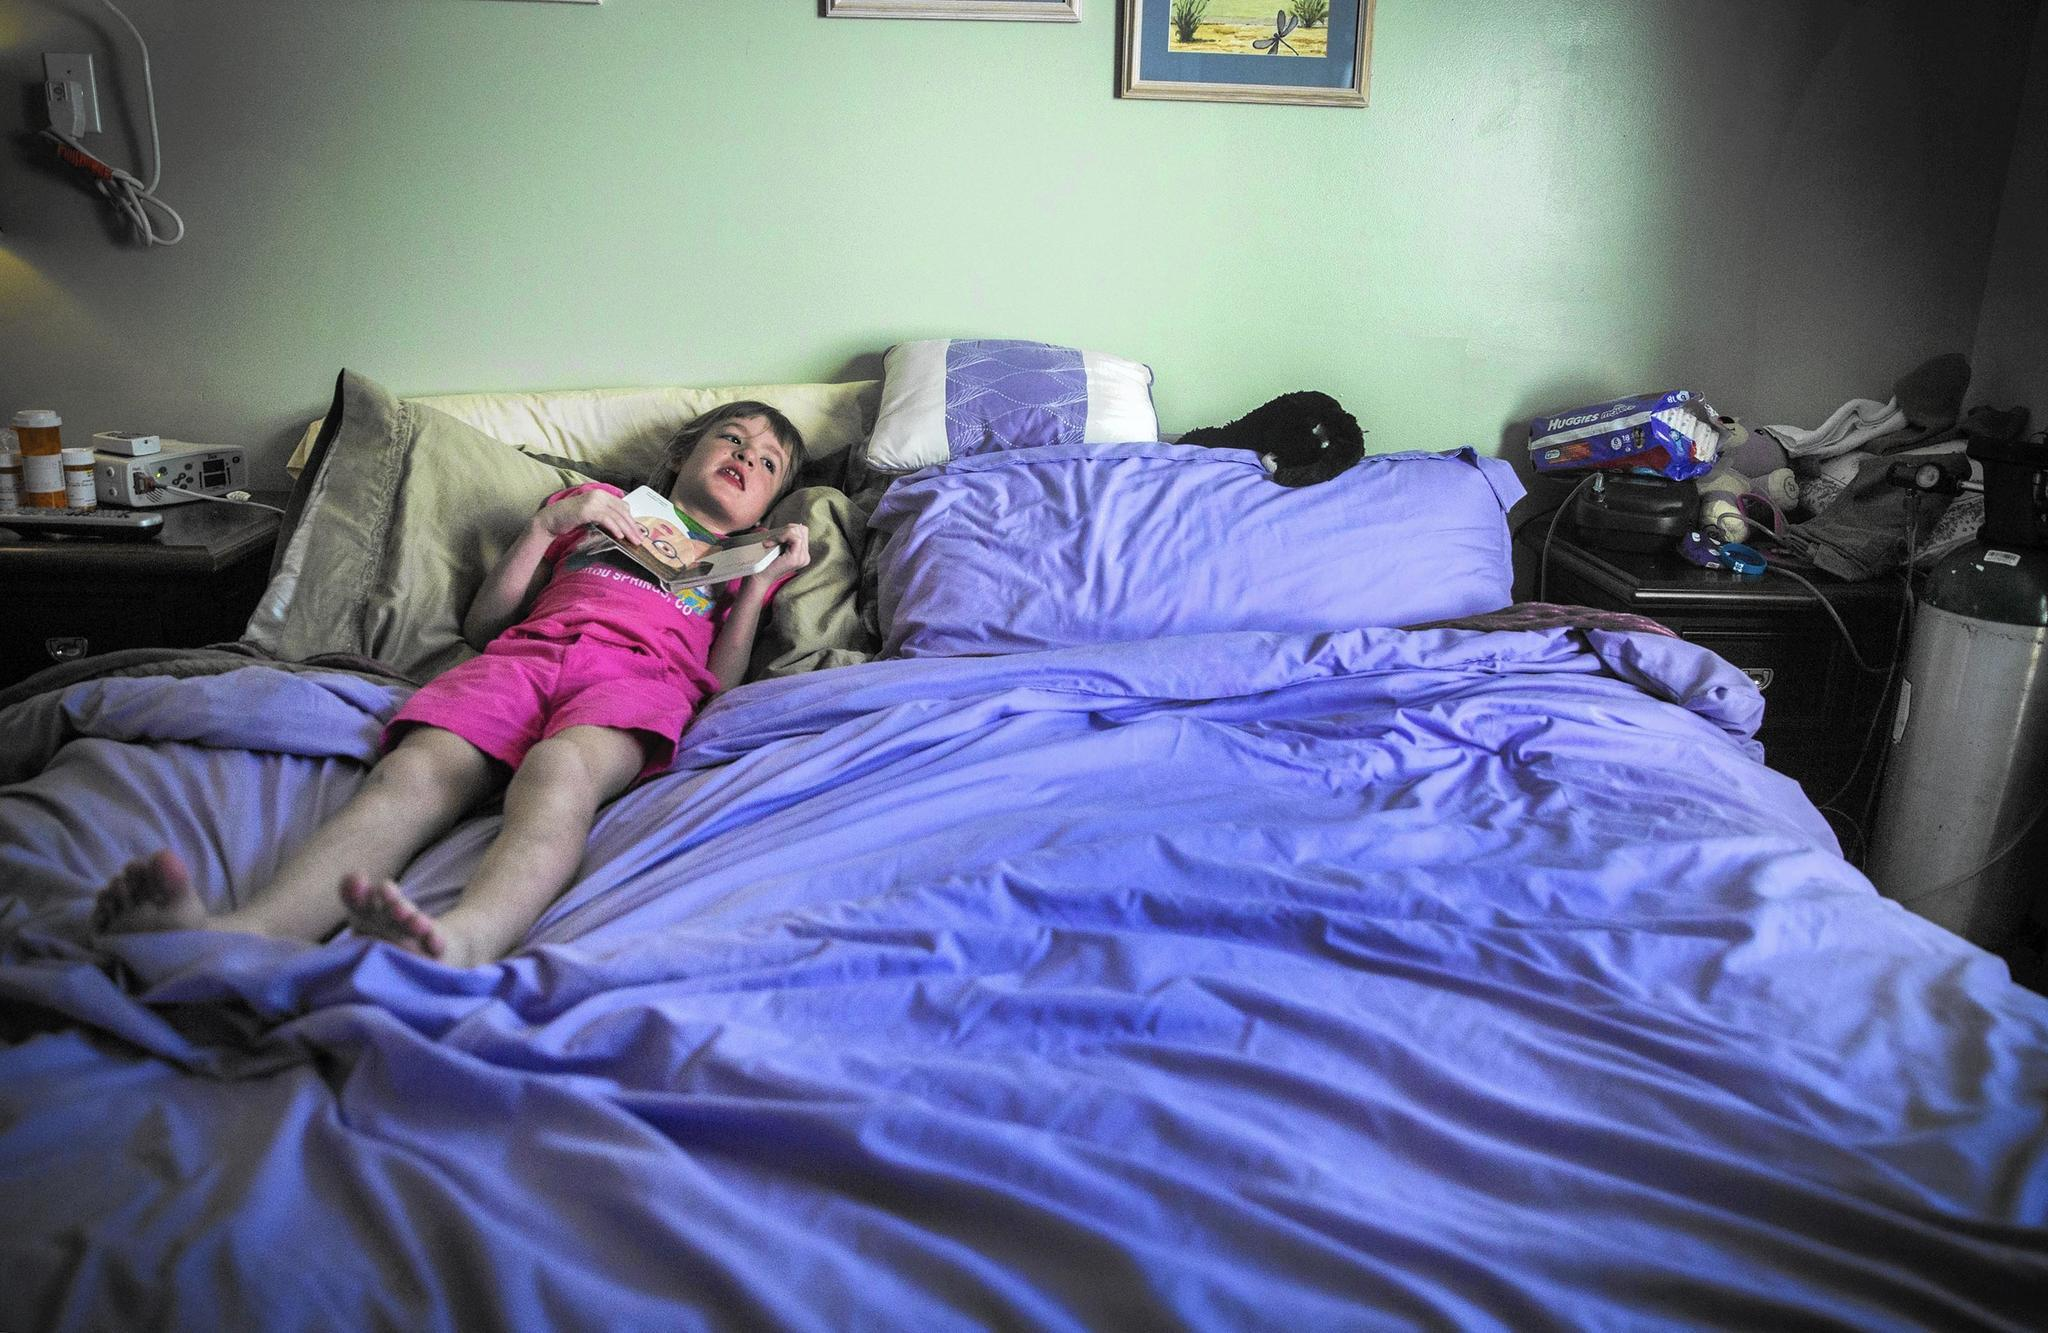 West Tarricone, 9, has a seizure in the bed she shares with her mother, Cara, at their Windham home in August 2016. They share a bed so Cara is close if West has a seizure in the middle of the night. West suffers from multiple seizure types, with some lasting seconds and others lasting more than hour. Some days she has hundreds, and even thousands, of seizures.